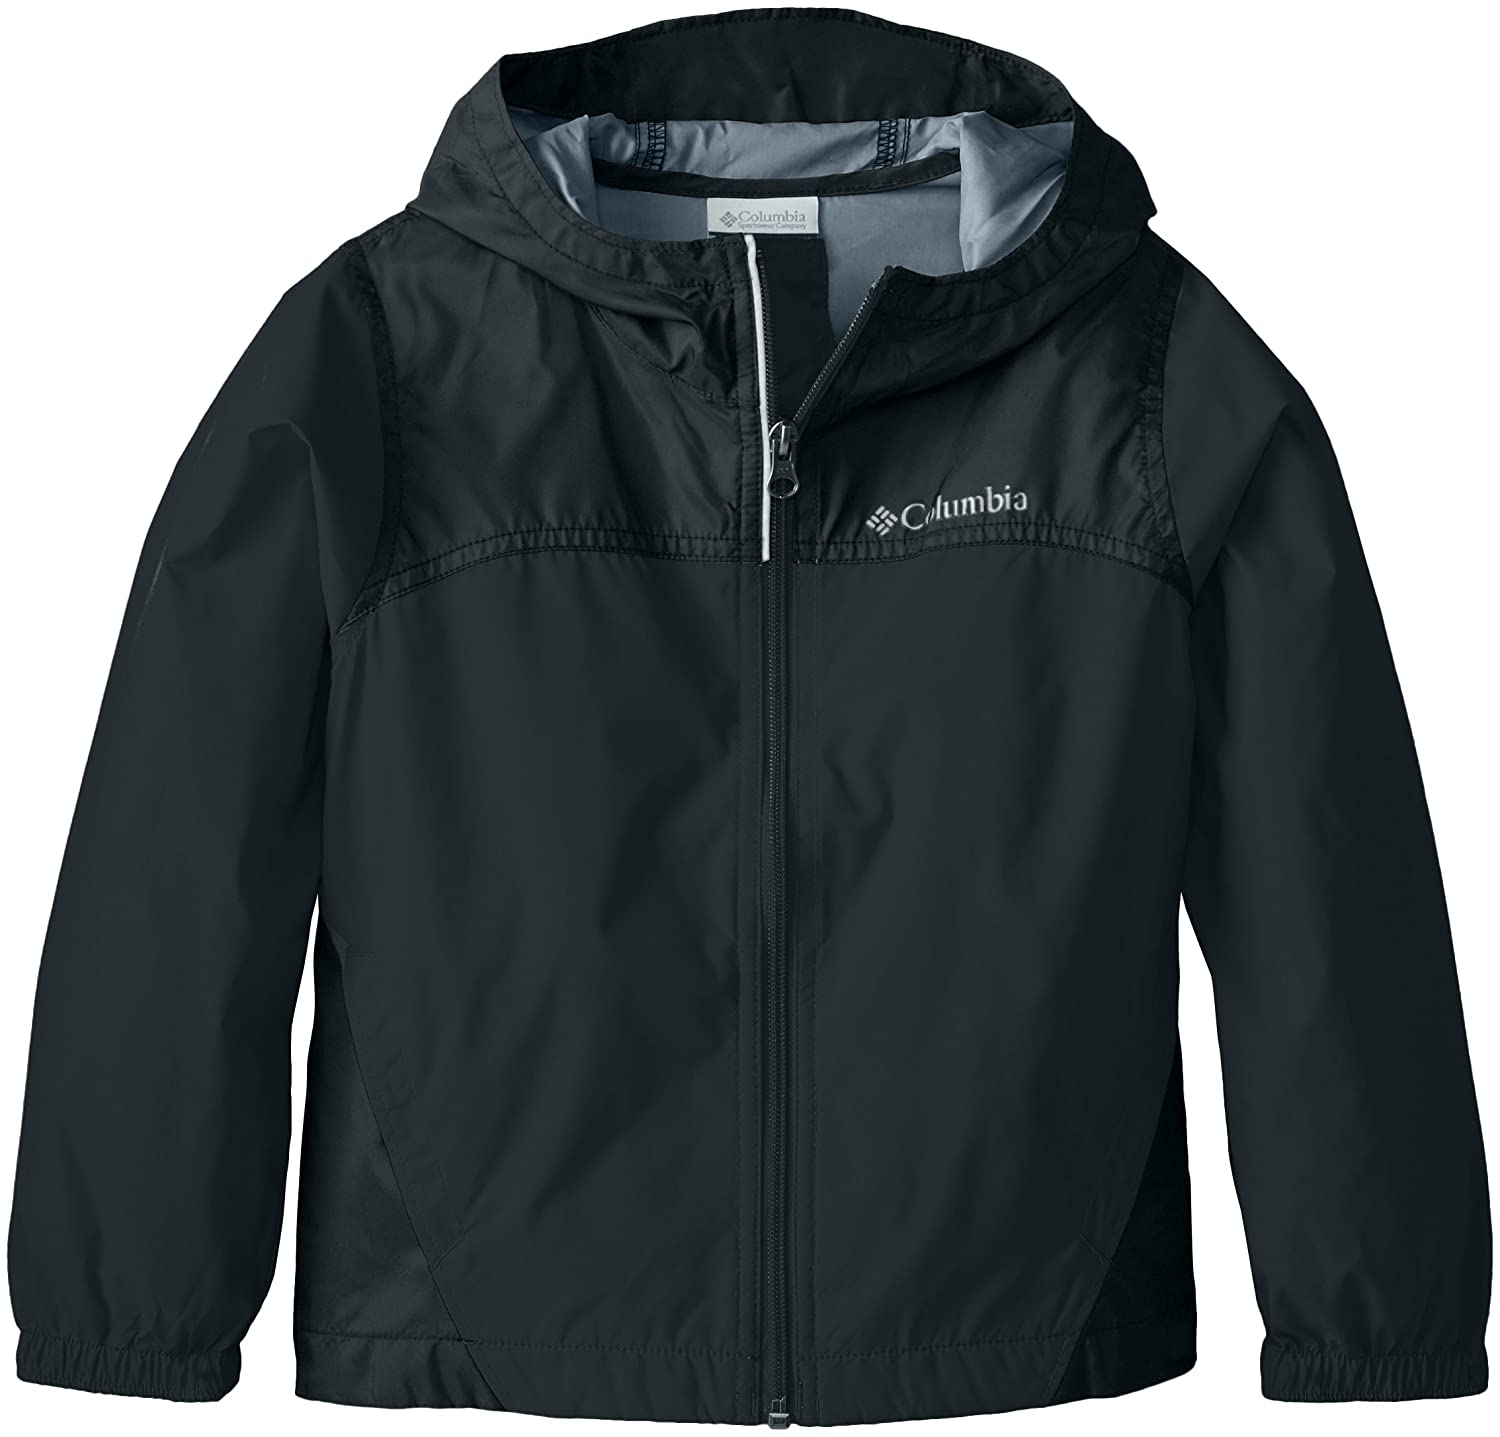 28d1f9045 Amazon.com  Columbia Youth Boys Toddler Glennaker Rain Jacket ...